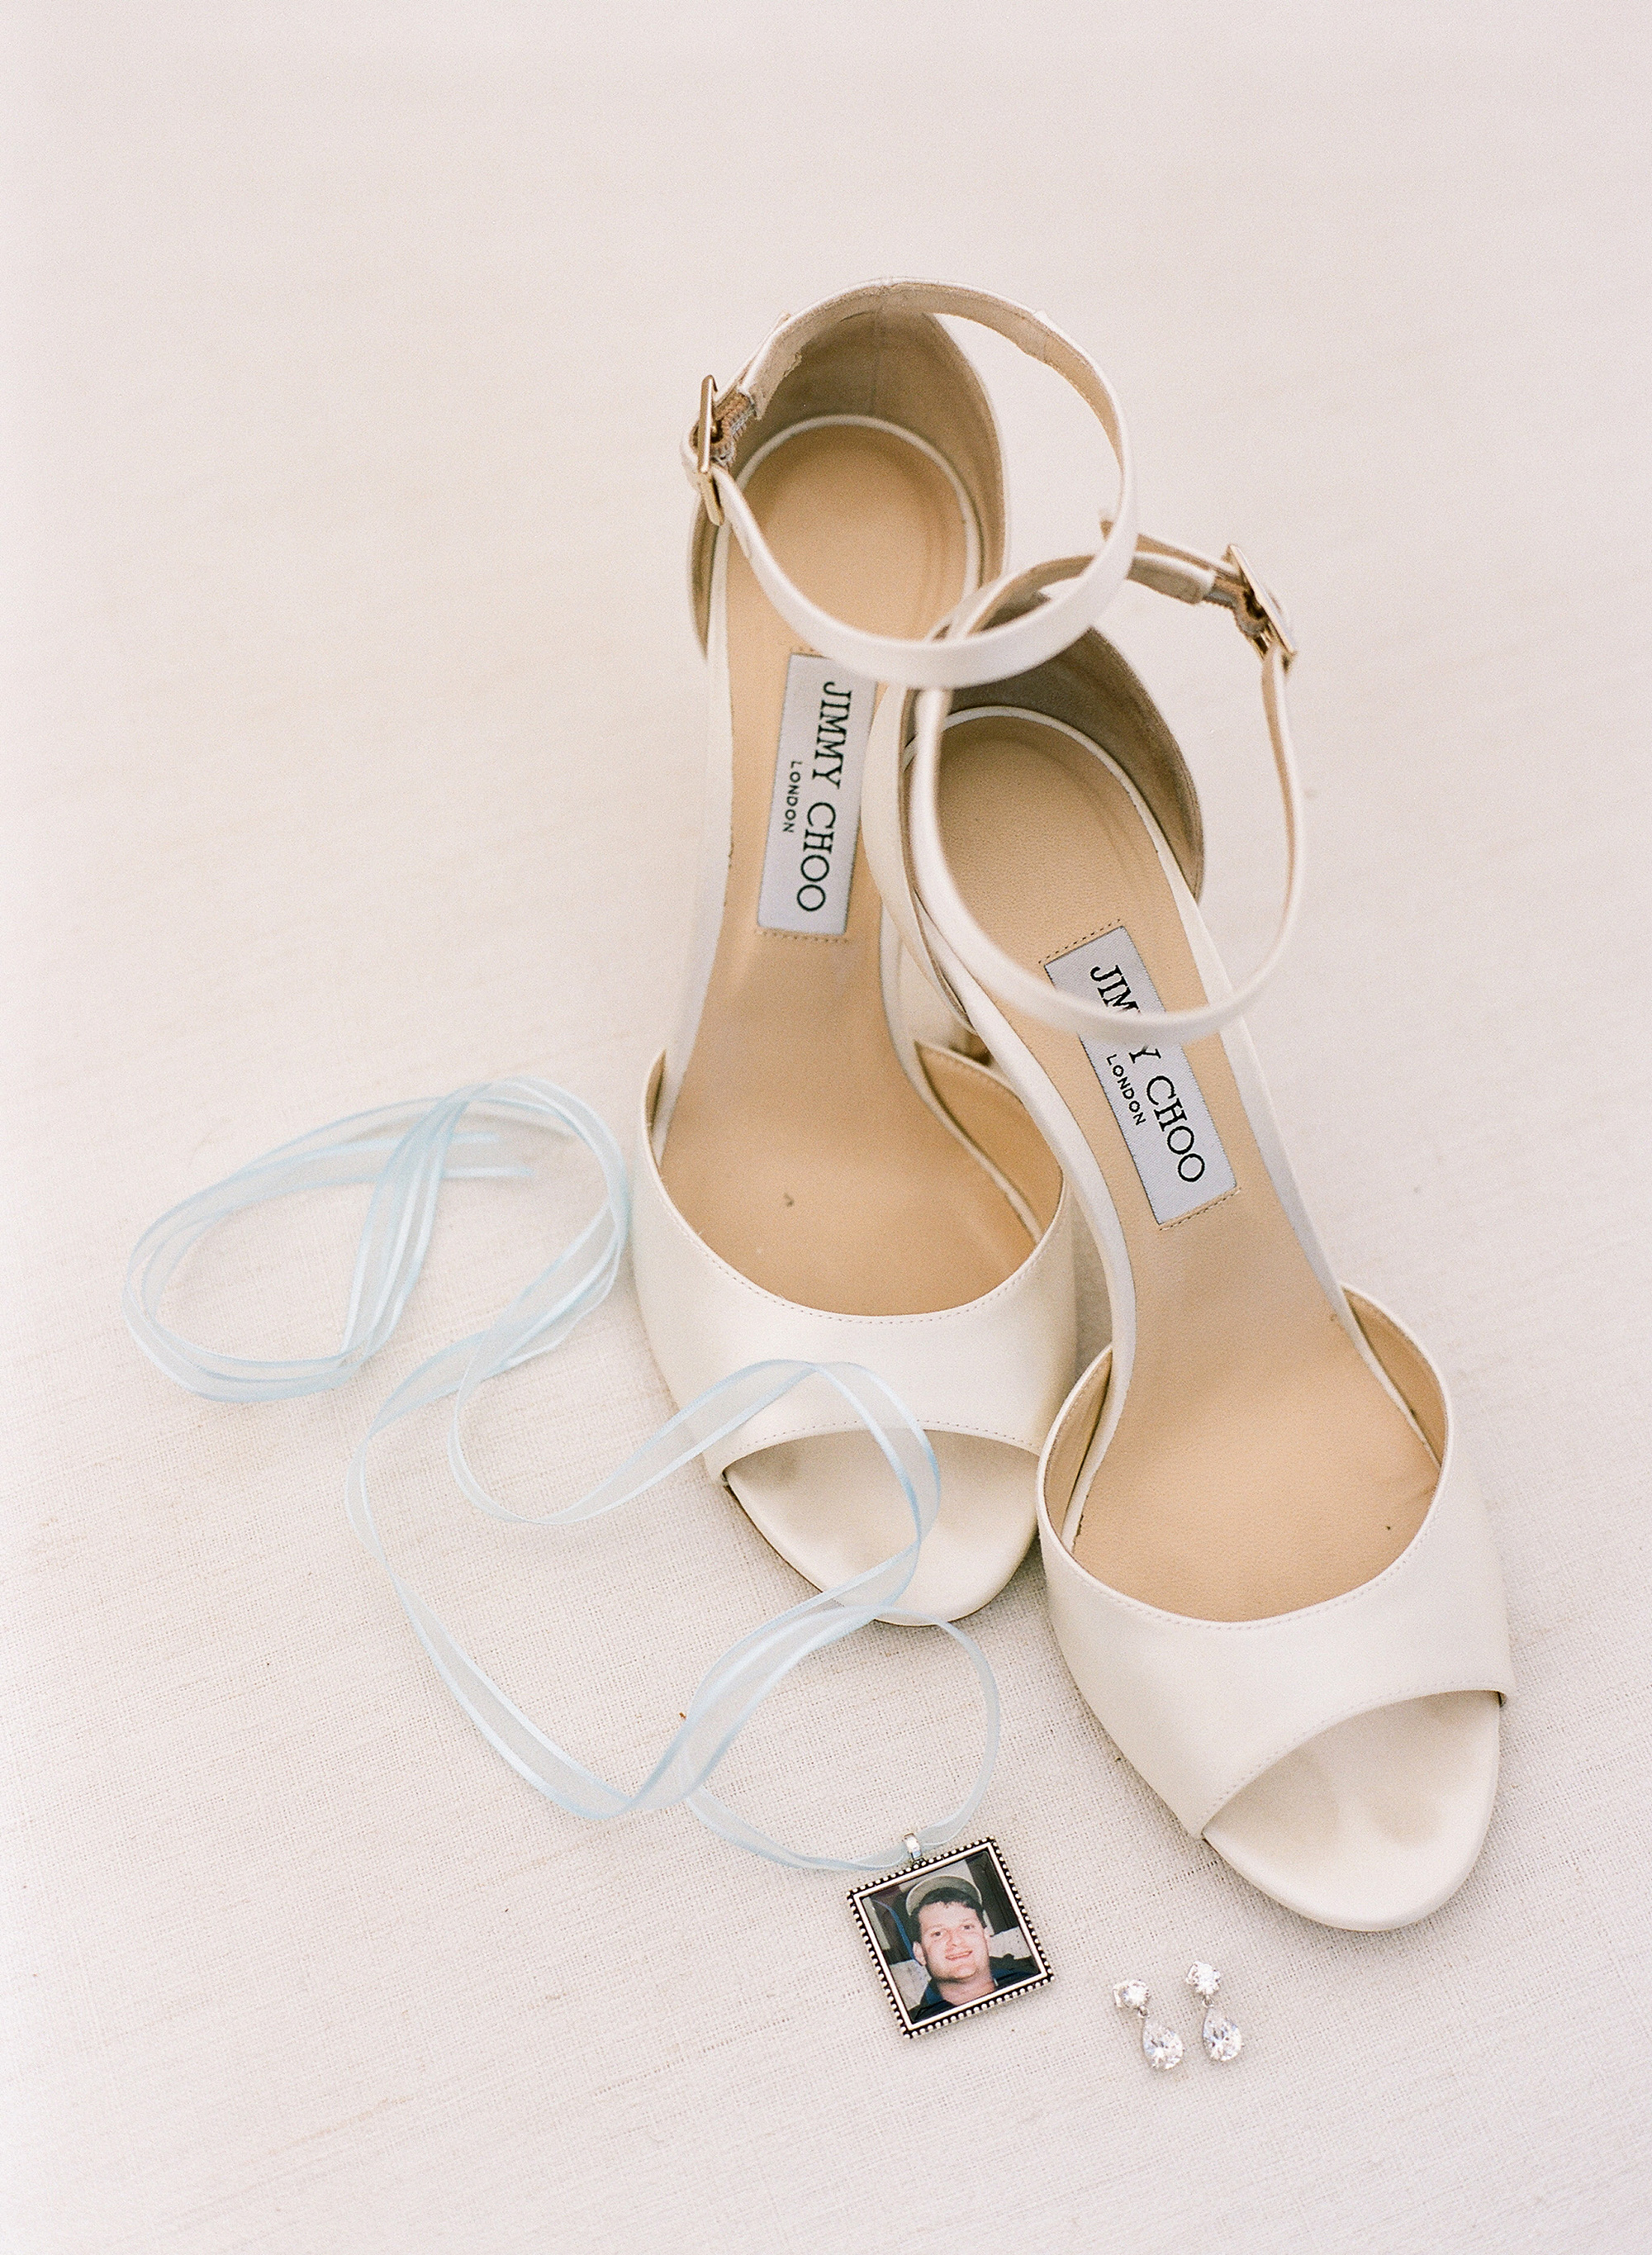 Our Favorite Black Wedding Shoes For Nontraditional Brides